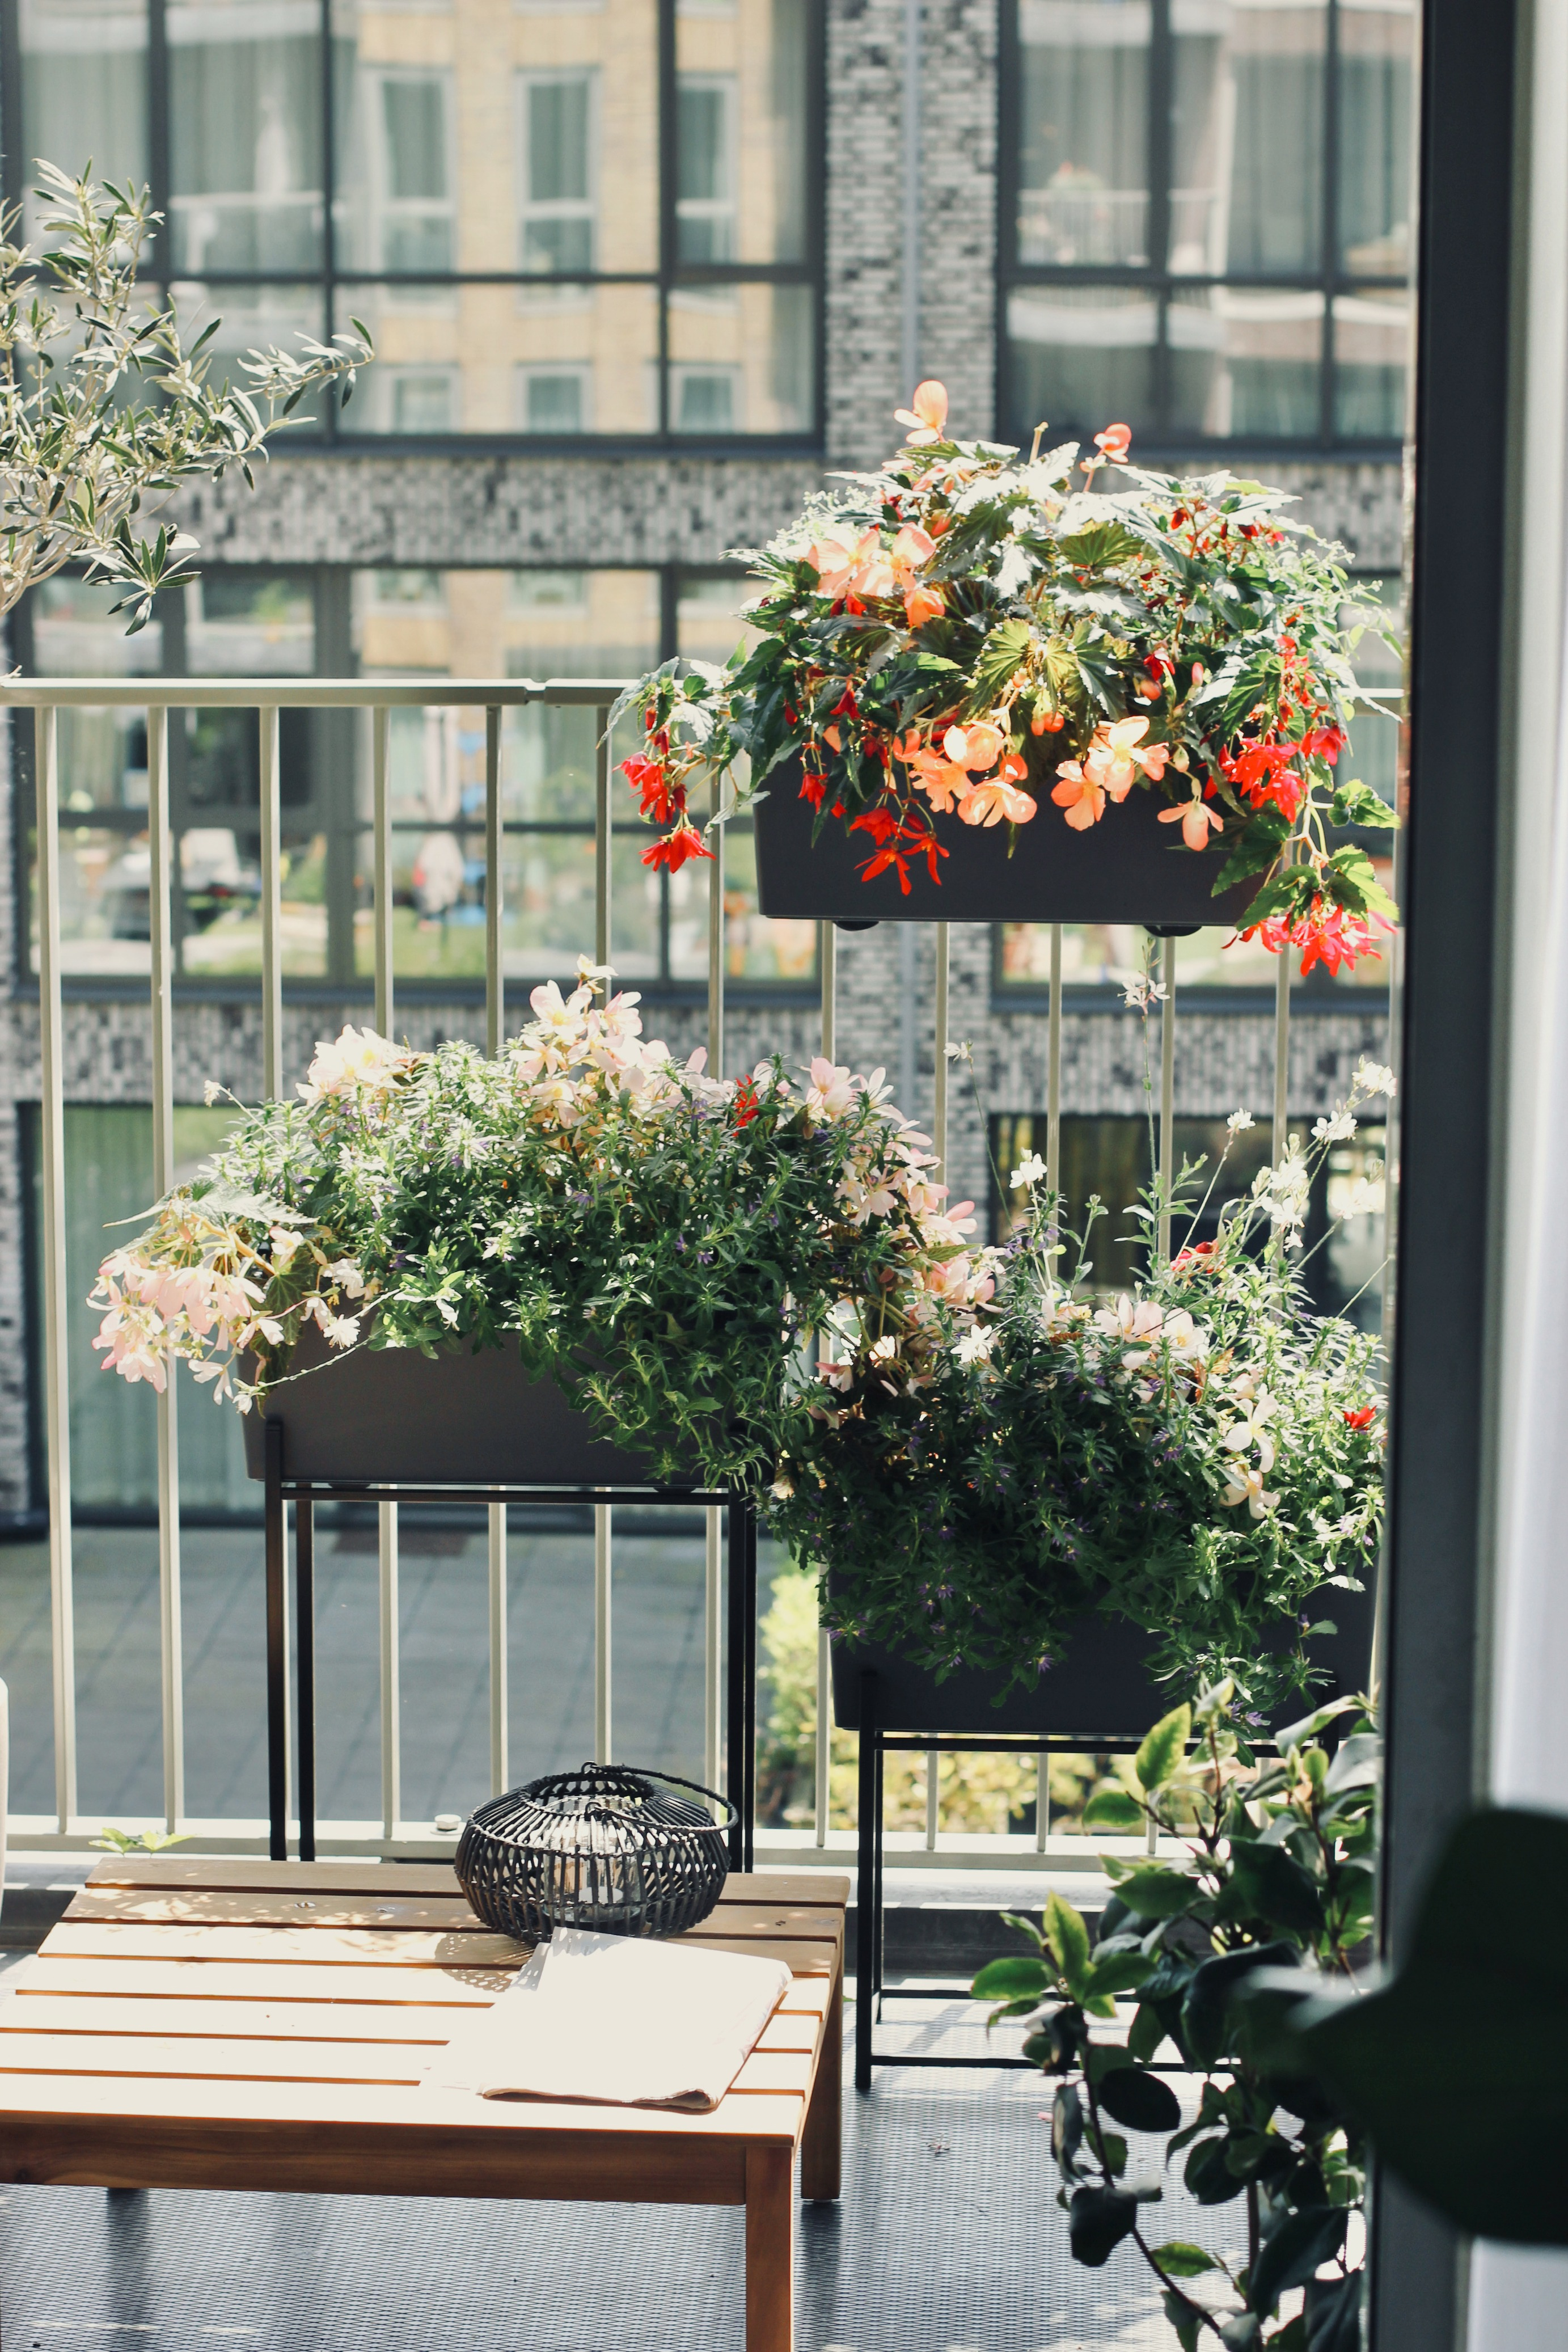 Green balcony with Upperbloom